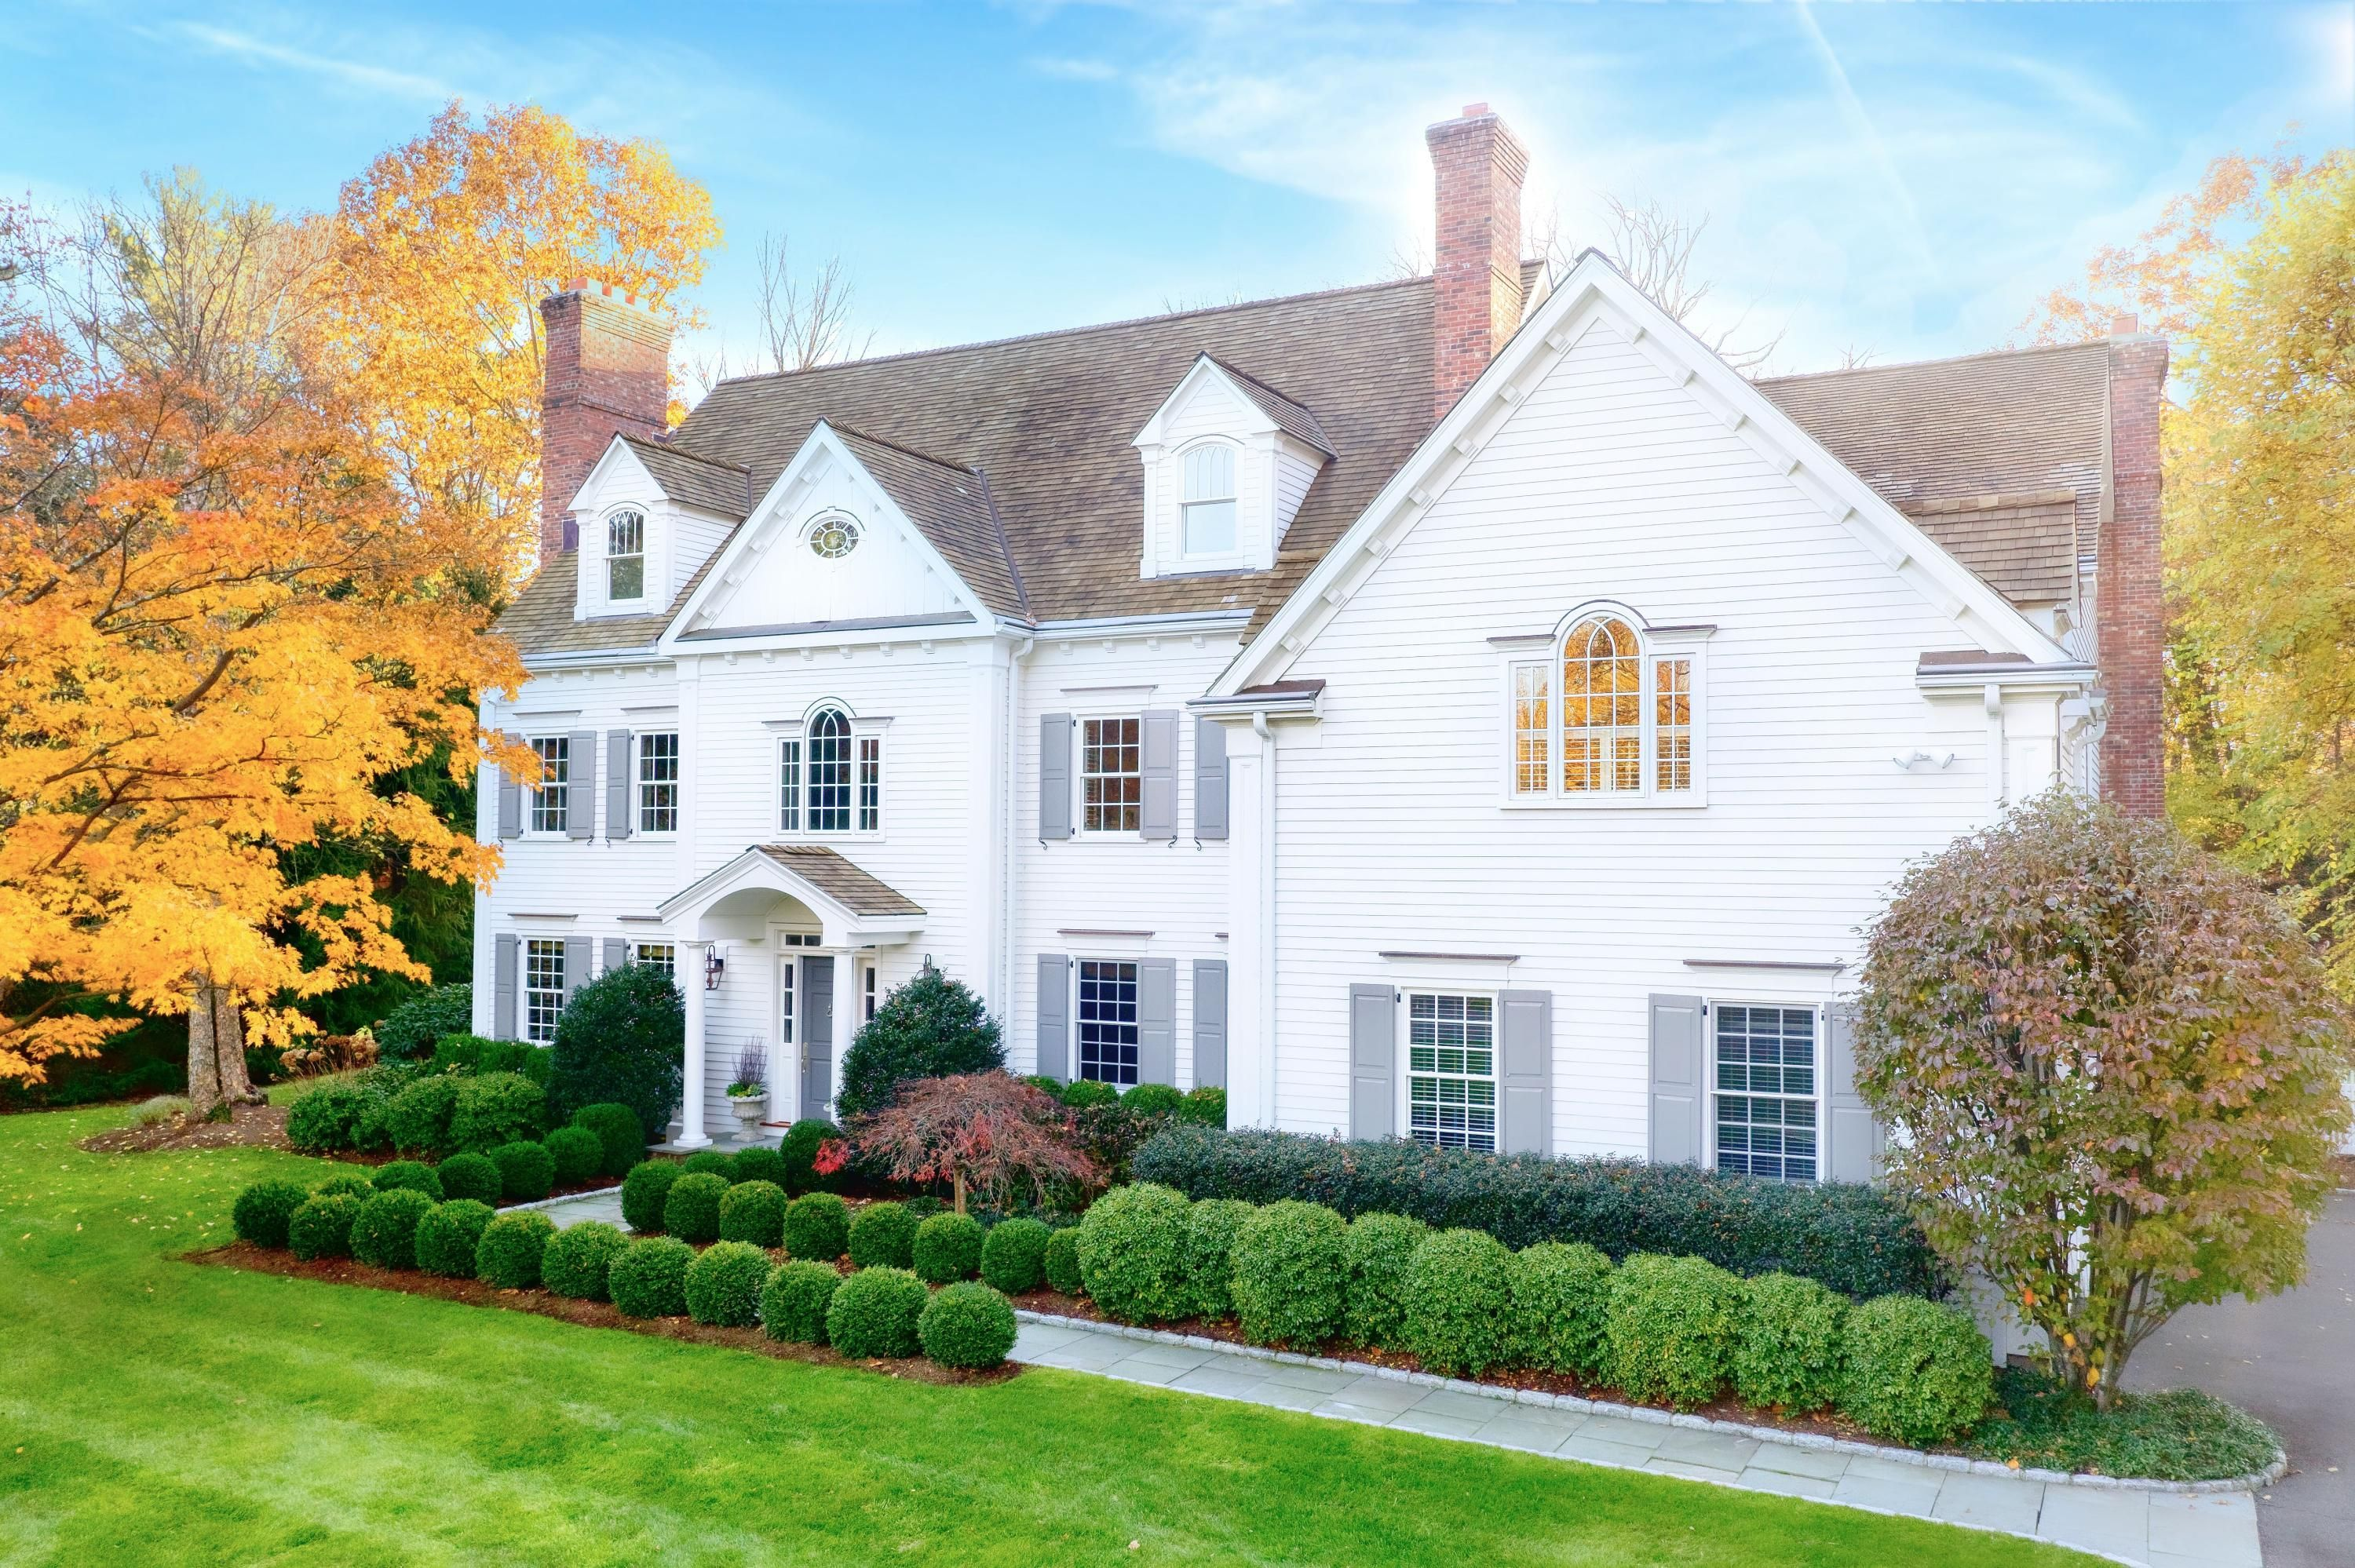 34 Norholt Drive New Canaan, CT 06840 - Image 1